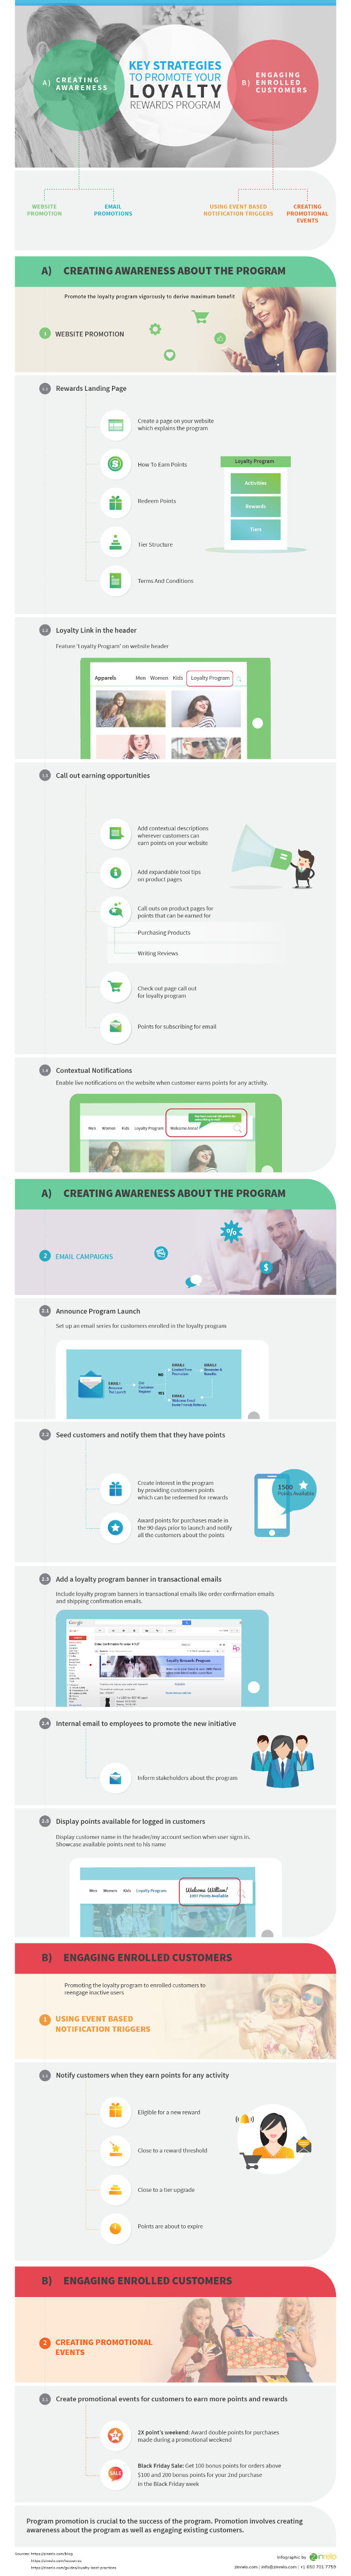 key-strategies-for-loyalty-rewards-programs-infographic-plaza